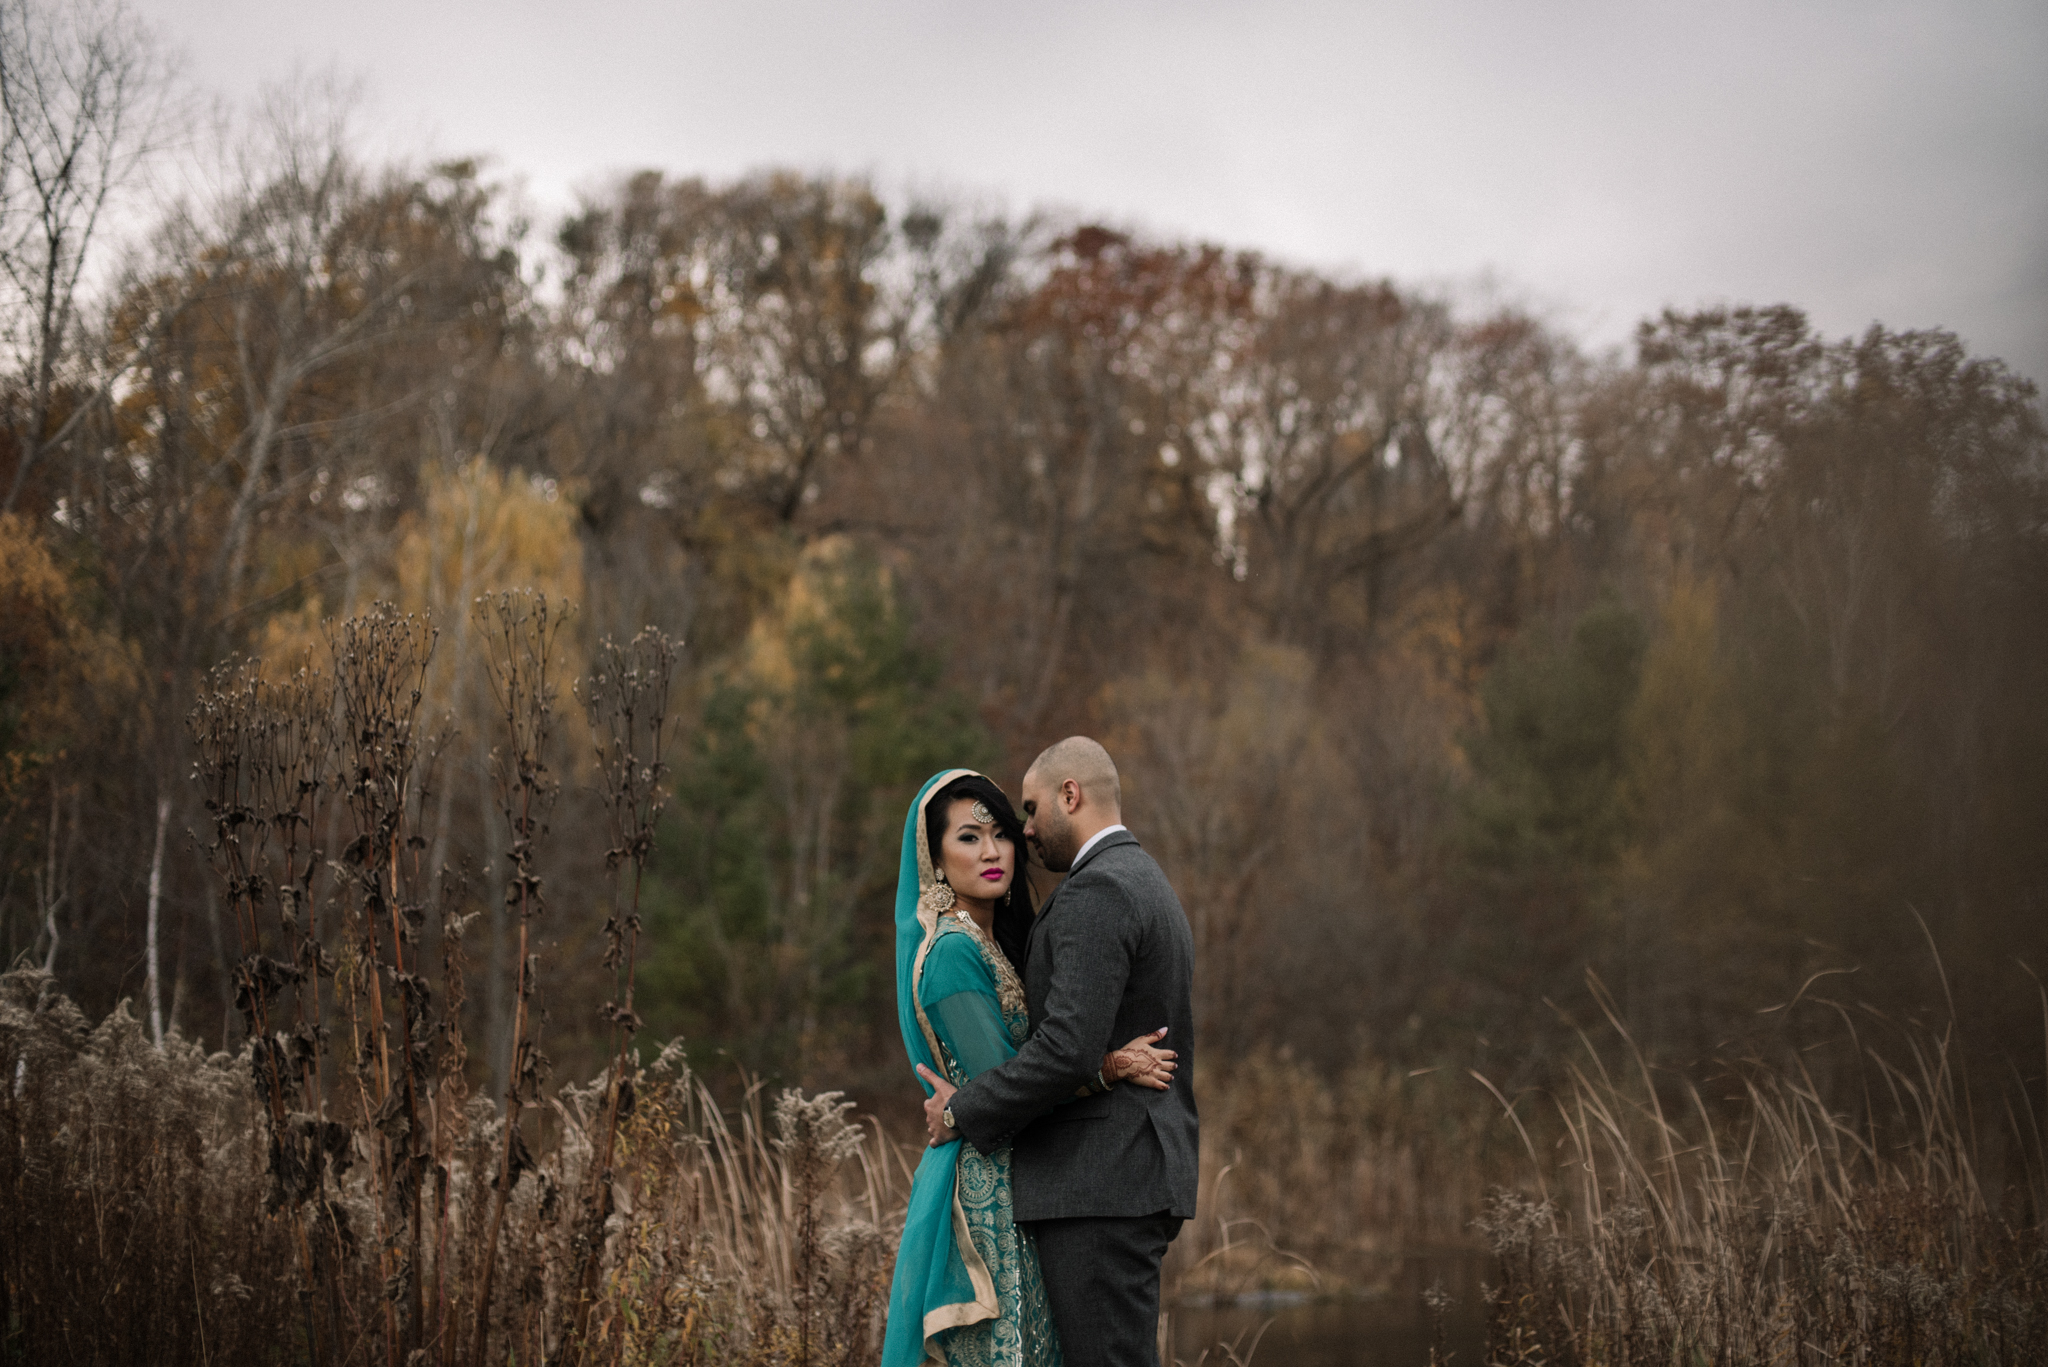 Daring Wanderer Photography - Daring Wanderer - Toronto portrait photographer - Toronto engagement photographer - Evergreen Brickworks Engagement - love - hindu wedding - Toronto wedding photographer - portraits - couple - Toronto - Evergreen Brickworks